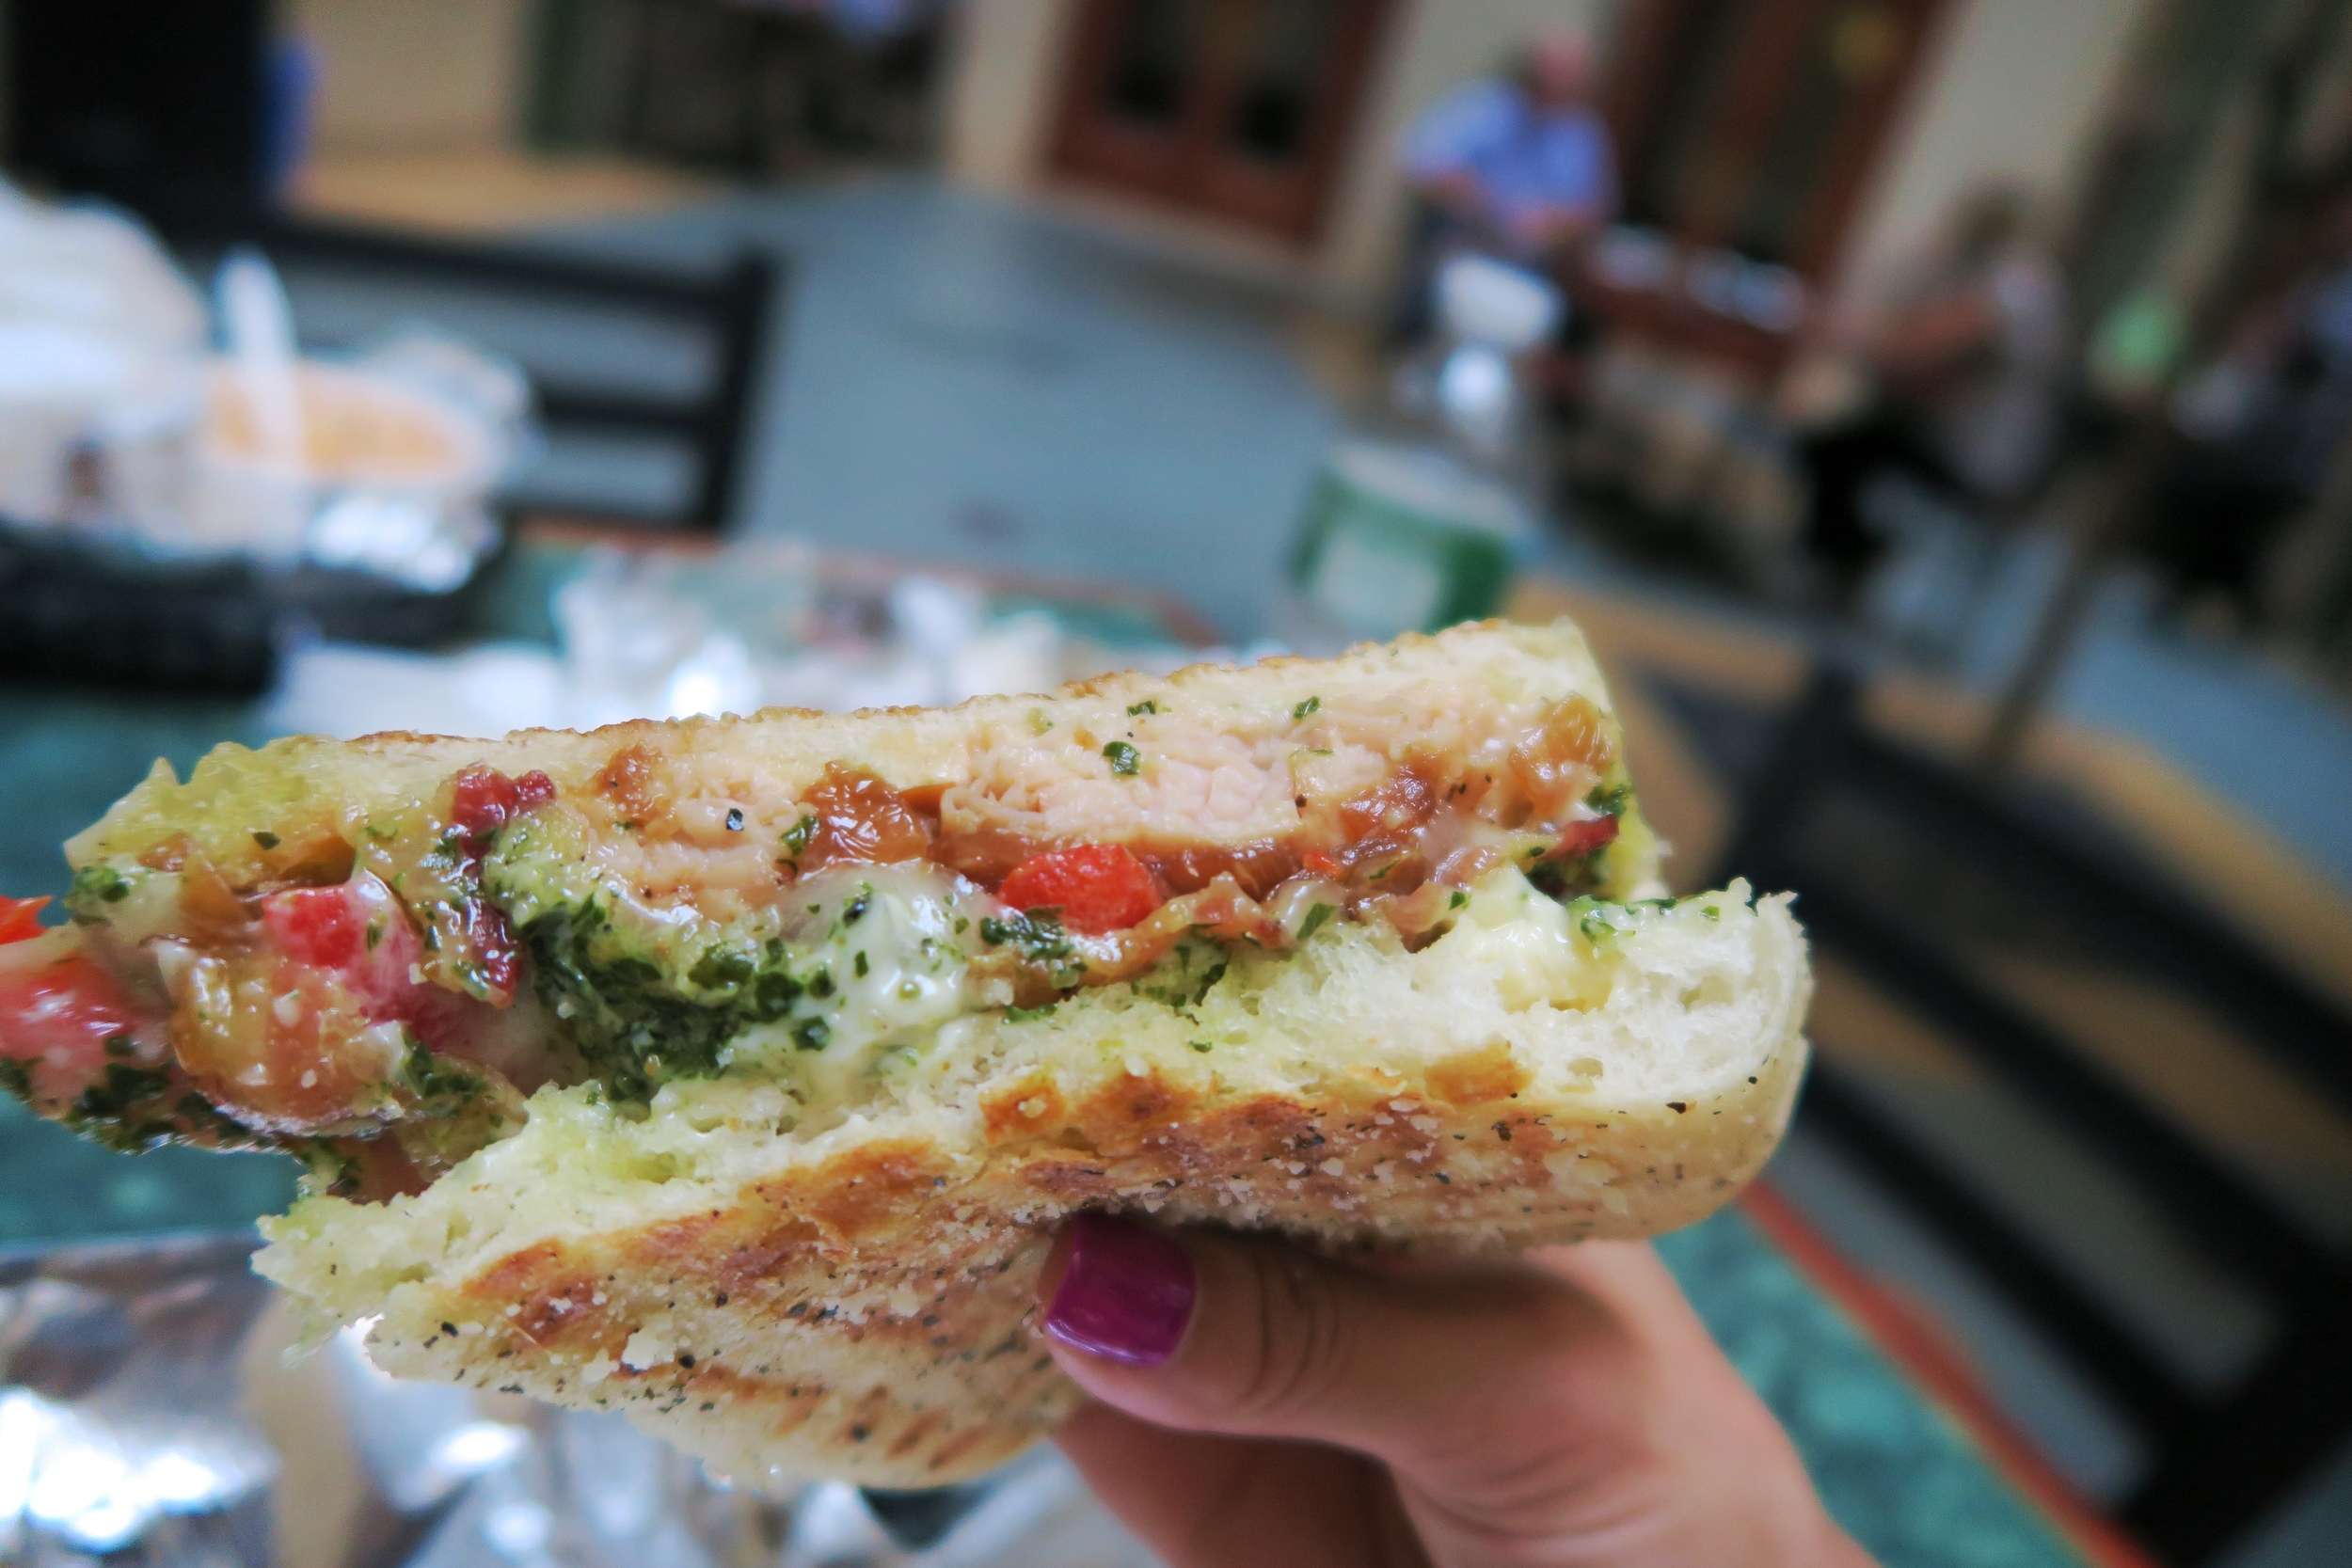 Smoked Turkey Pesto Panini with Applewood Smoked Bacon, Melted Provolone, Caramelized Onions, Roasted Red Peppers, Basil Pesto Aioli on Grilled Artisan Focaccia $7.95